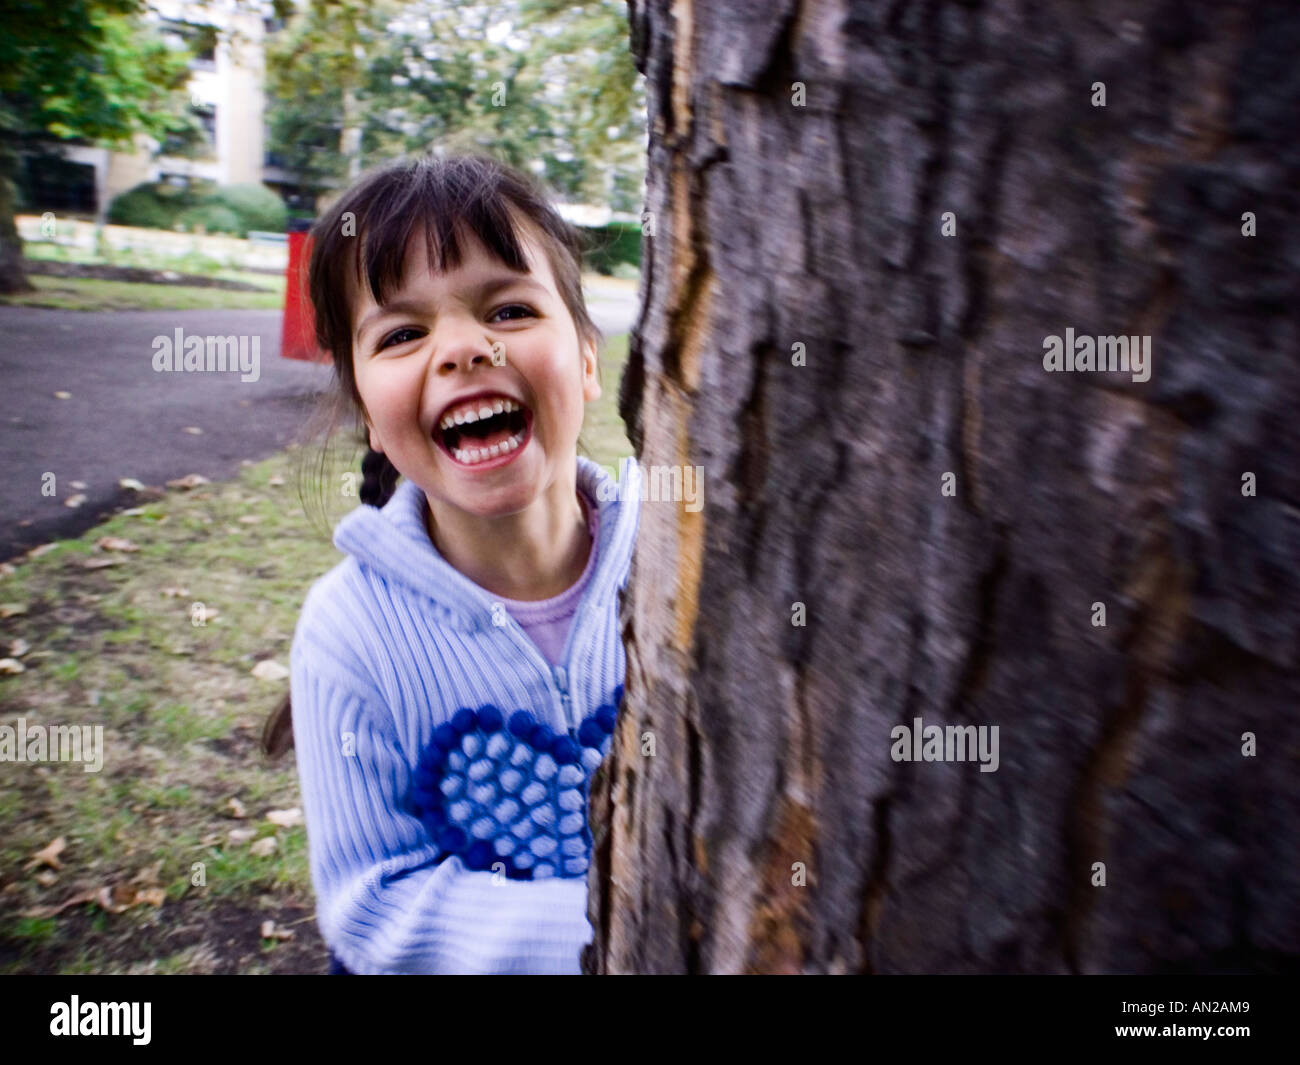 child hiding behind a tree-playing hide and seek,Richmond Park,Surrey,England - Stock Image